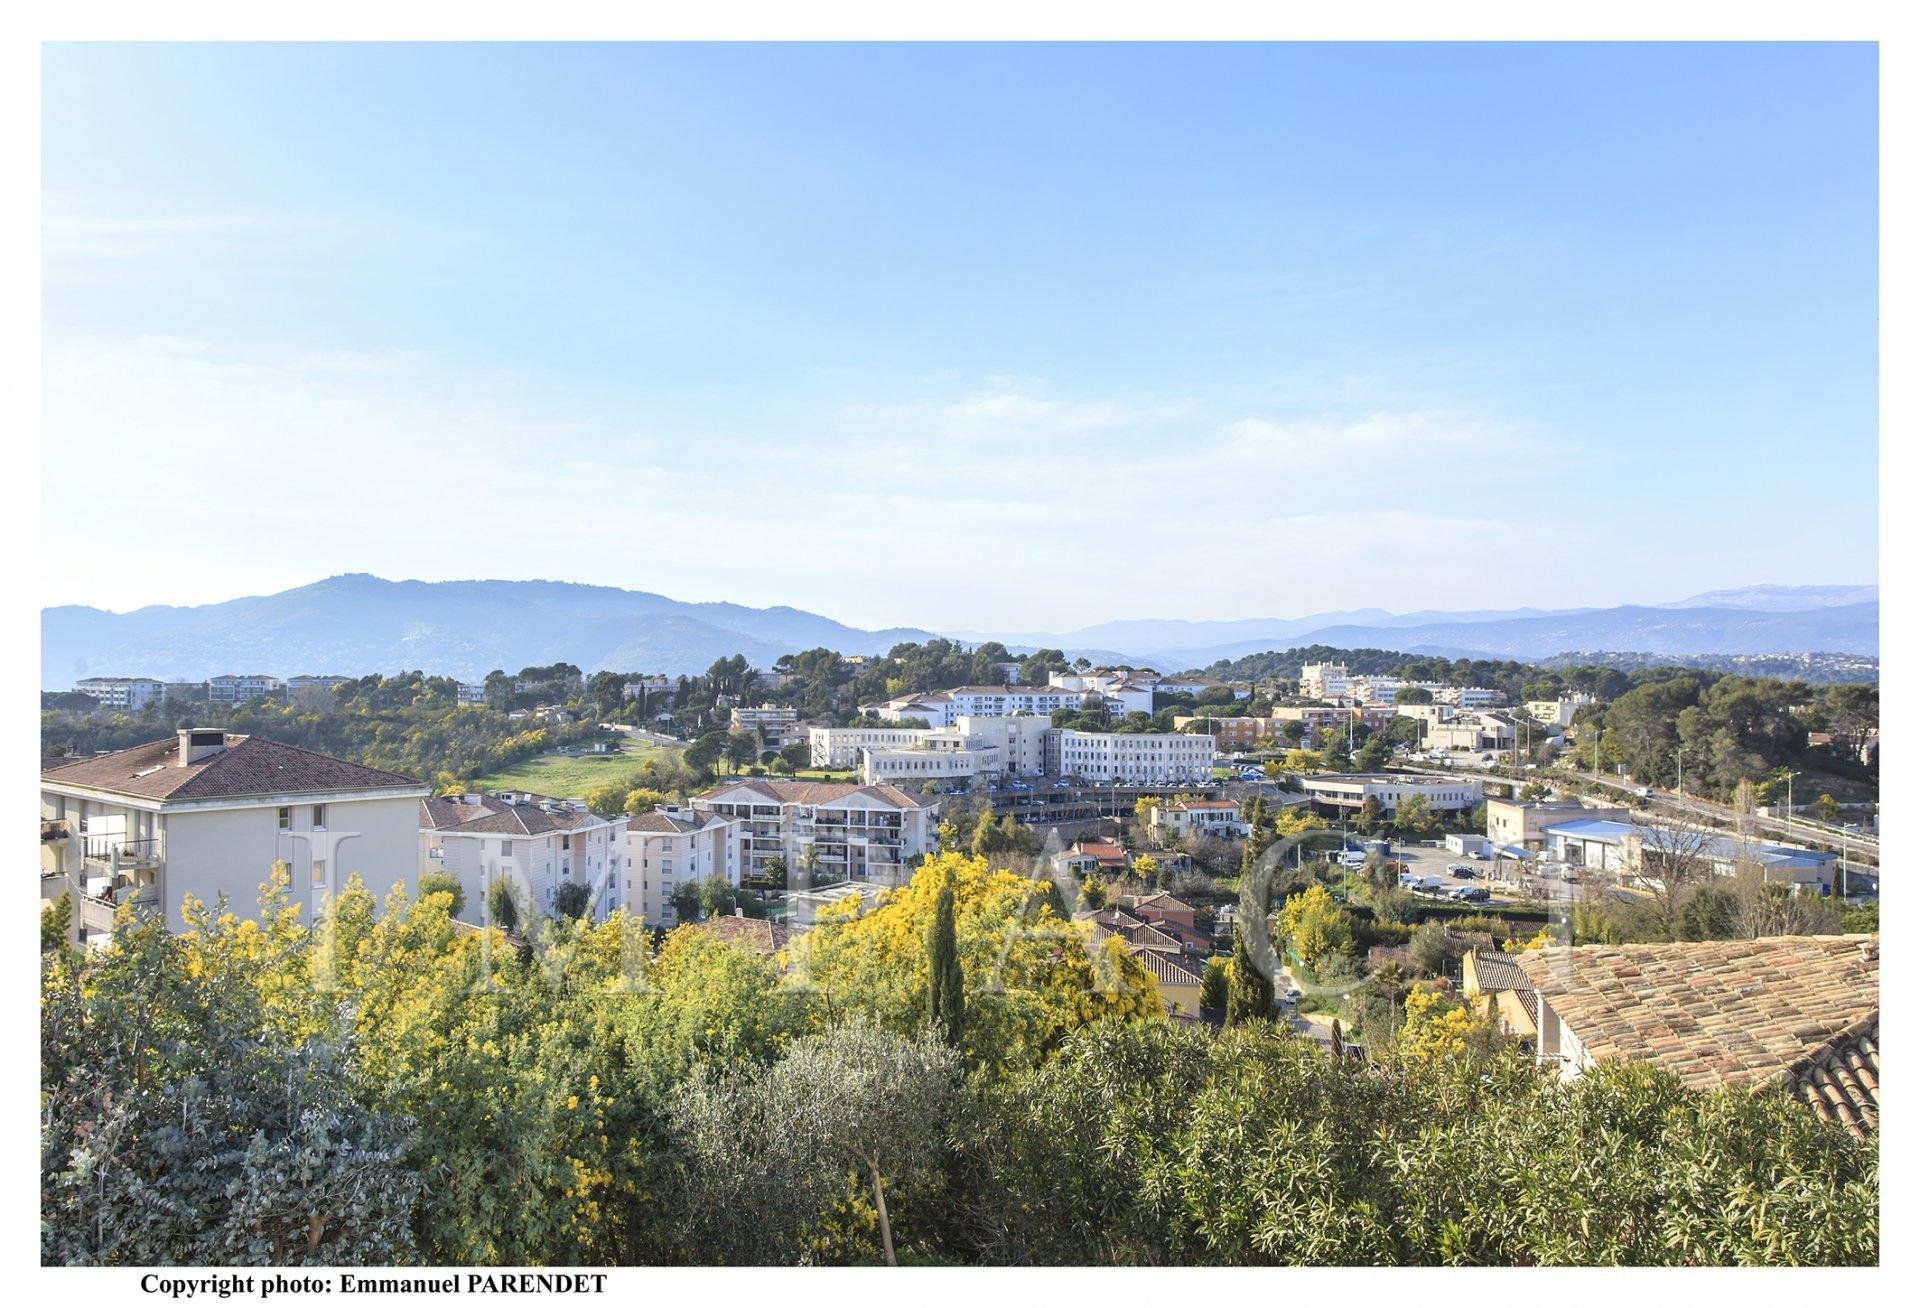 CANNES - CLOSED DOMAIN - 10 MN DRIVE TO REACH CANNES BEACH-